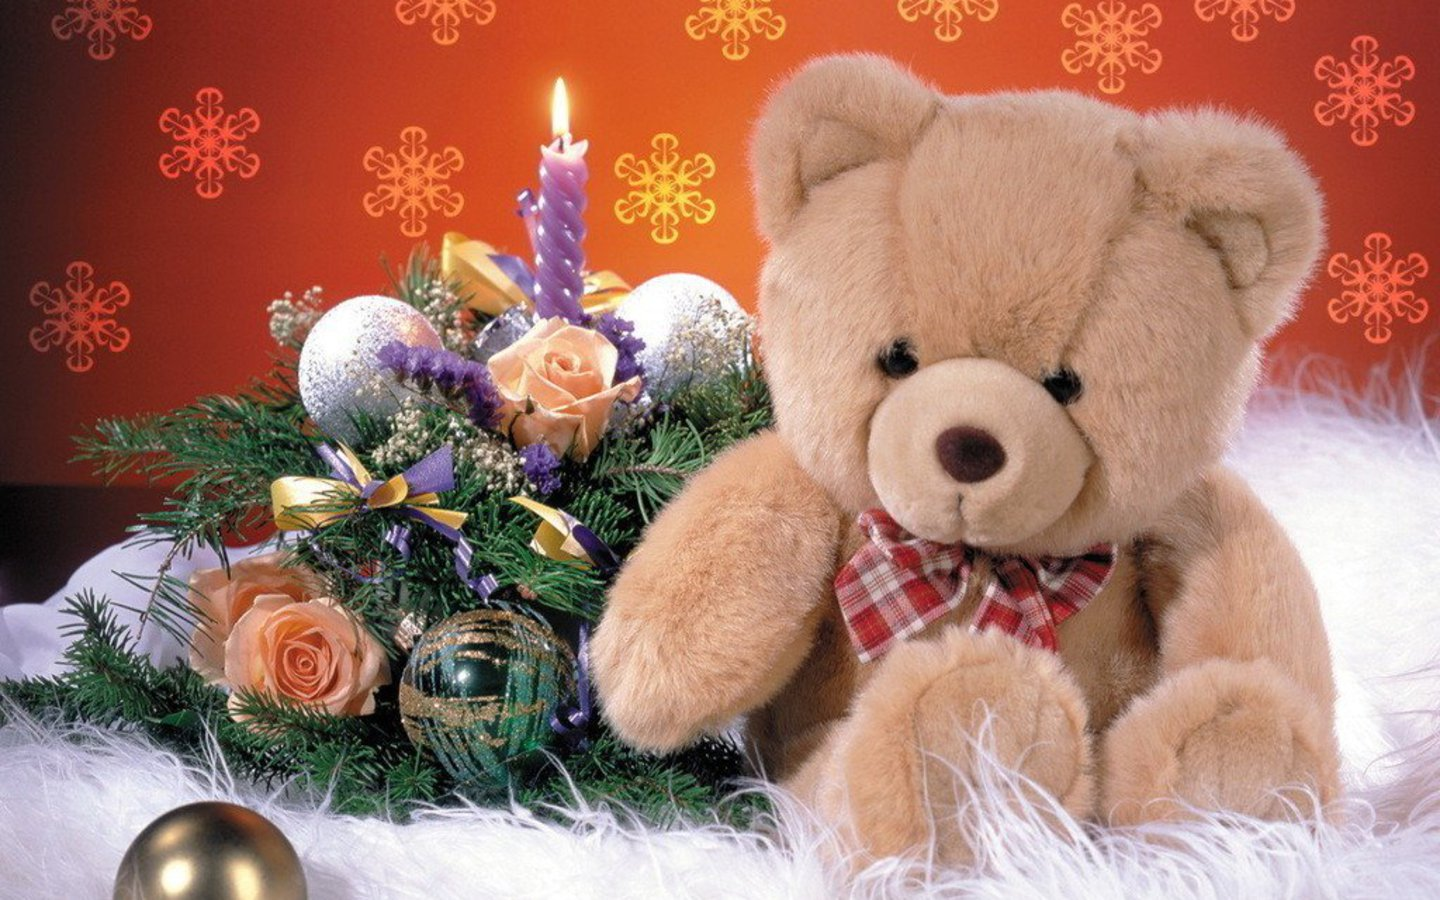 Christmas Teddy Bear Wallpaper: Teddy Bears: Teddy Bear V. & Wallpapers